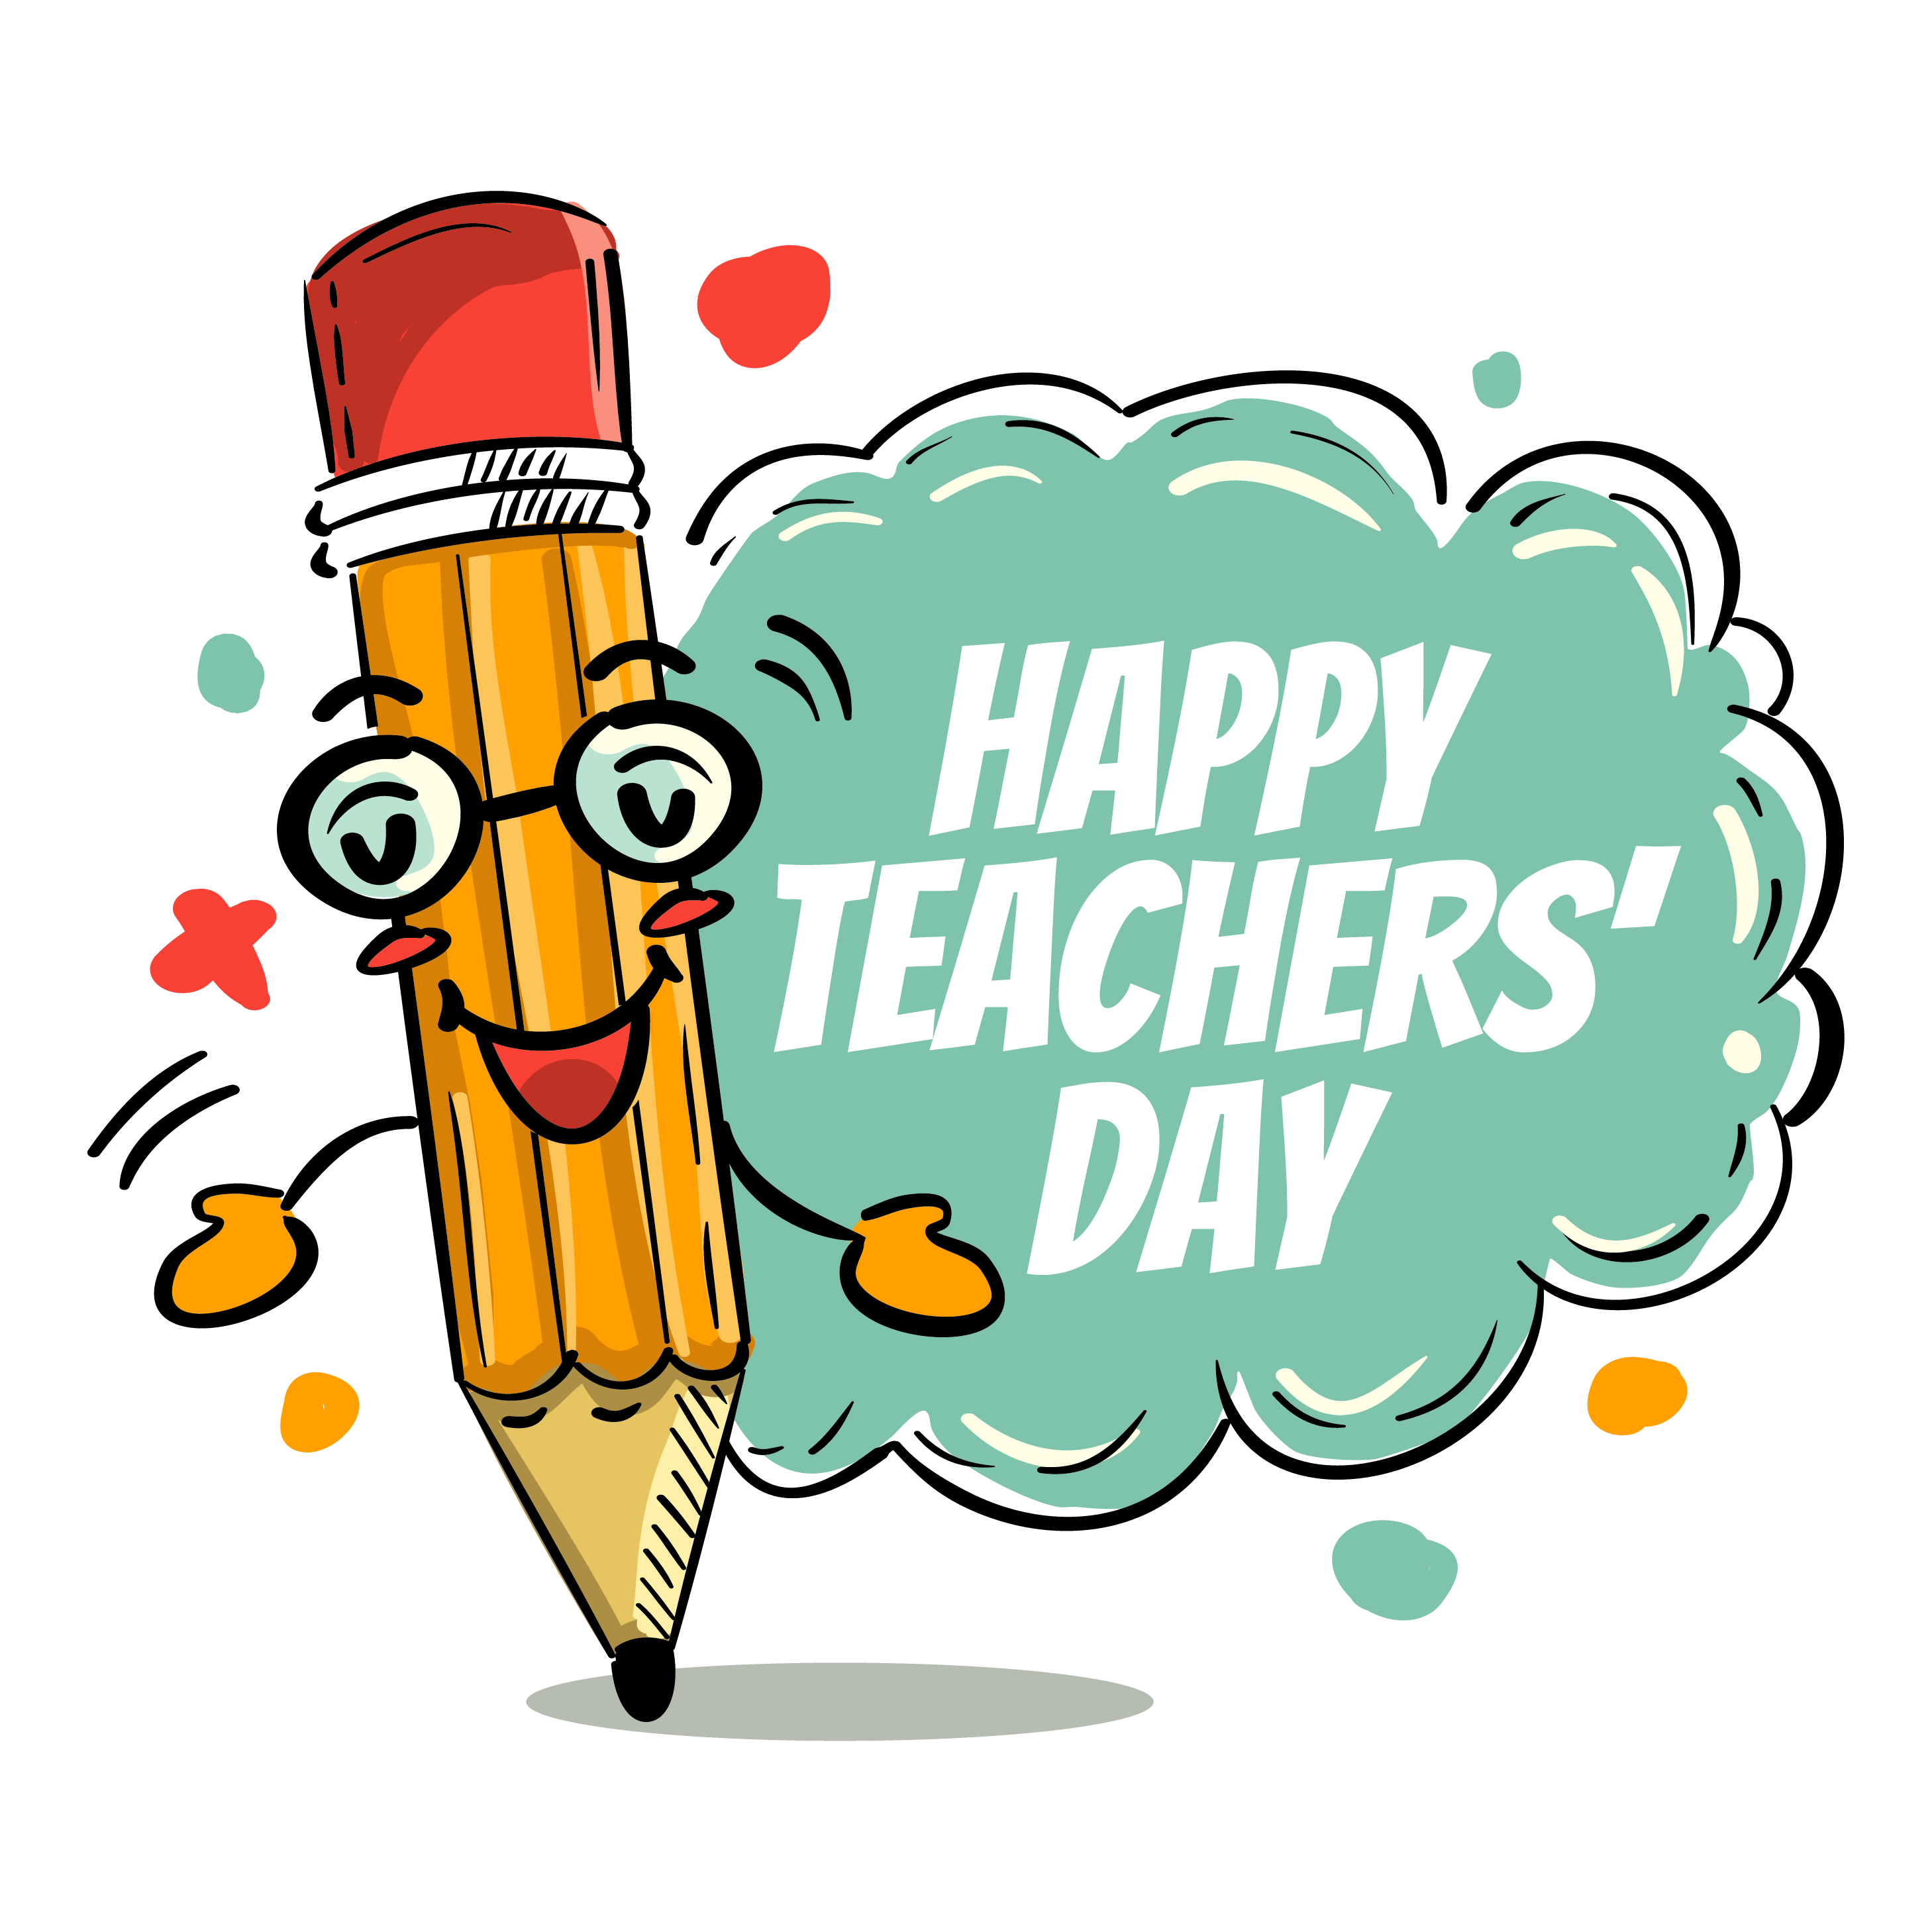 Pencil Greeting Teacher's Day - Download Free Vectors ...